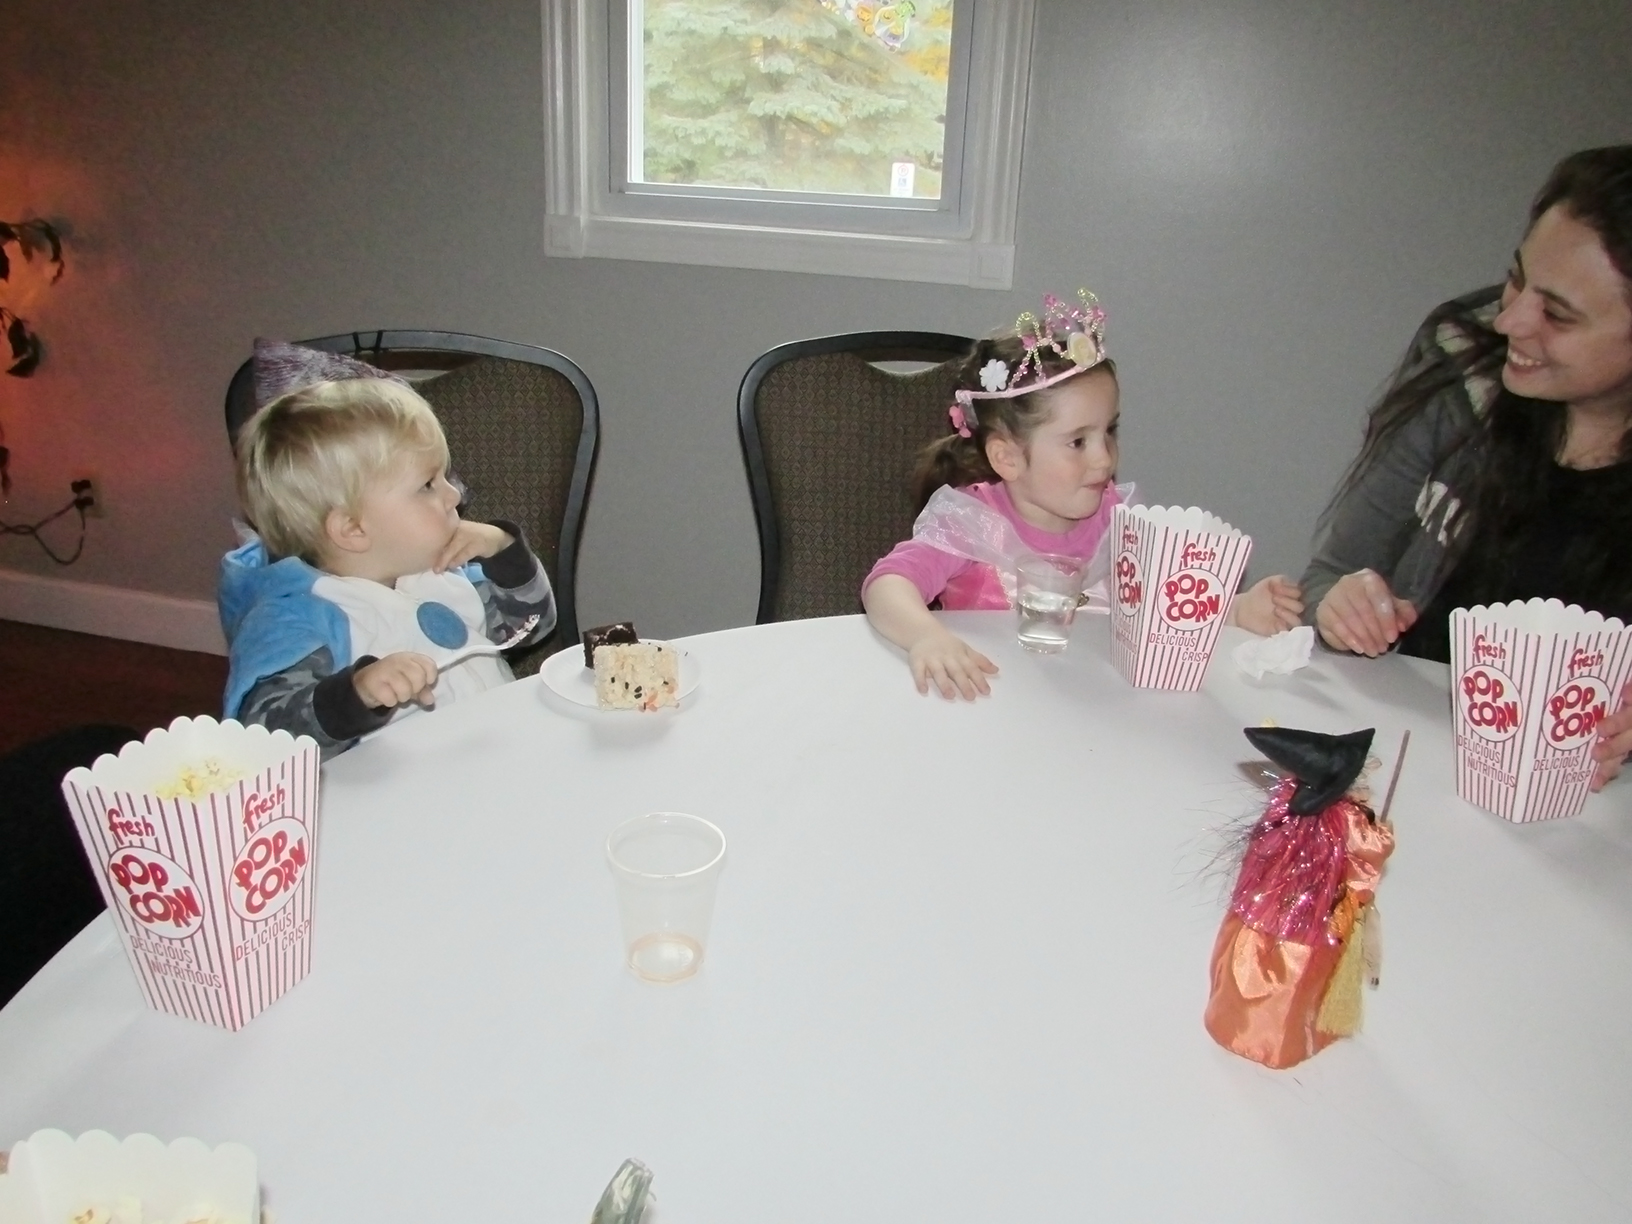 Two children and an adult enjoying popcorn and rice crispy squares at a table